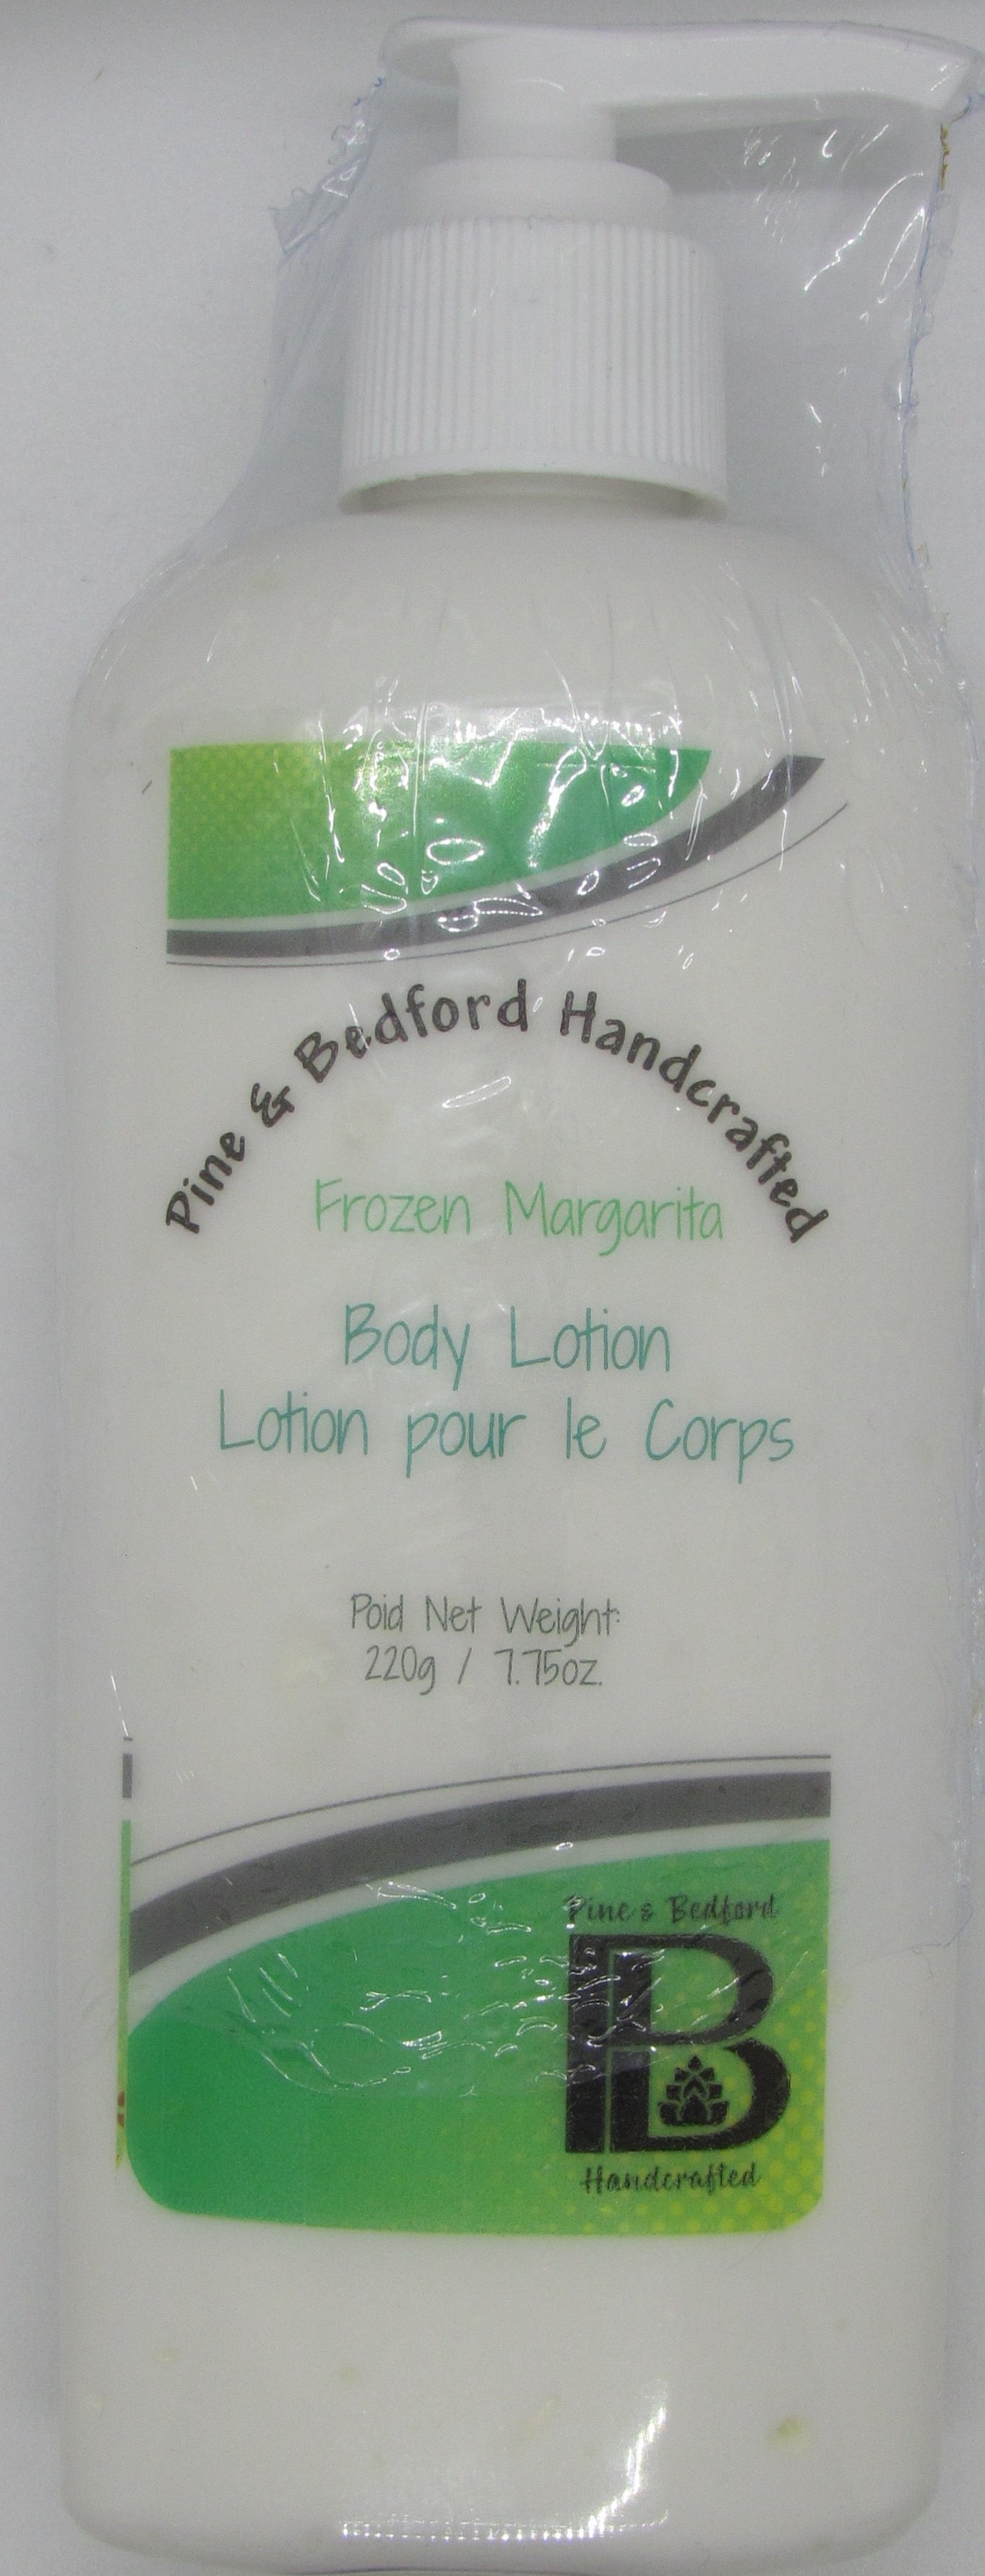 Pine and Bedford's 7.75 oz tall bottle (with dispensing pump) of body lotion. Frozen Margarita (Lime) fragrance.